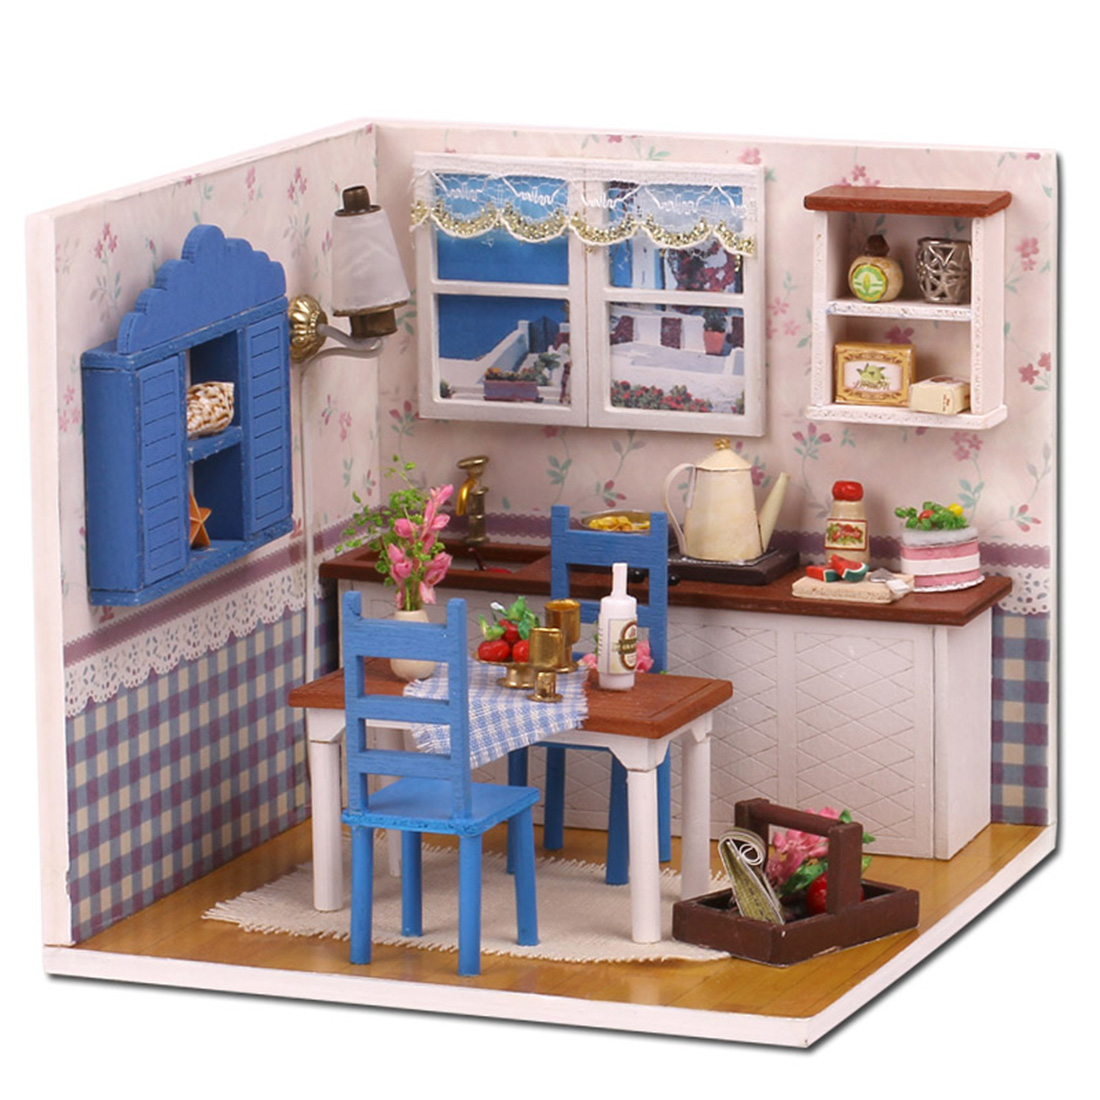 DIY Creative Handmade Theme Wooden Cabin Assembly Building Model Toy Set - Warm Afternoon